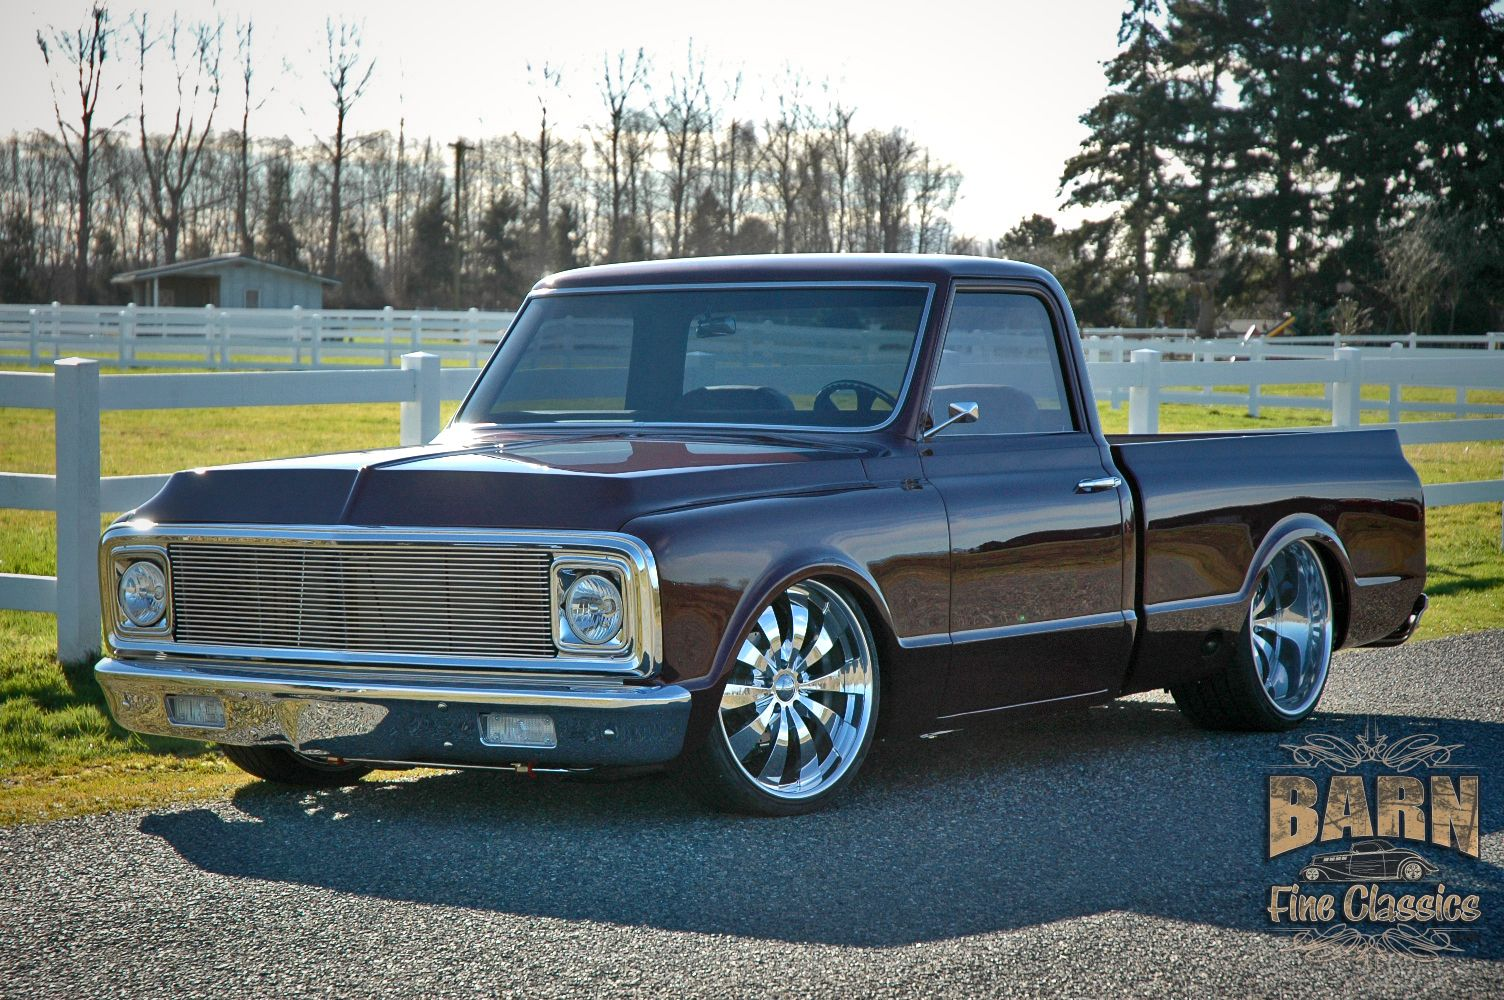 1968 C10 Pickup Project Chevy Truck 50th Anniversary Short Wide Restoration Call For Price Or Questions 1504x1000